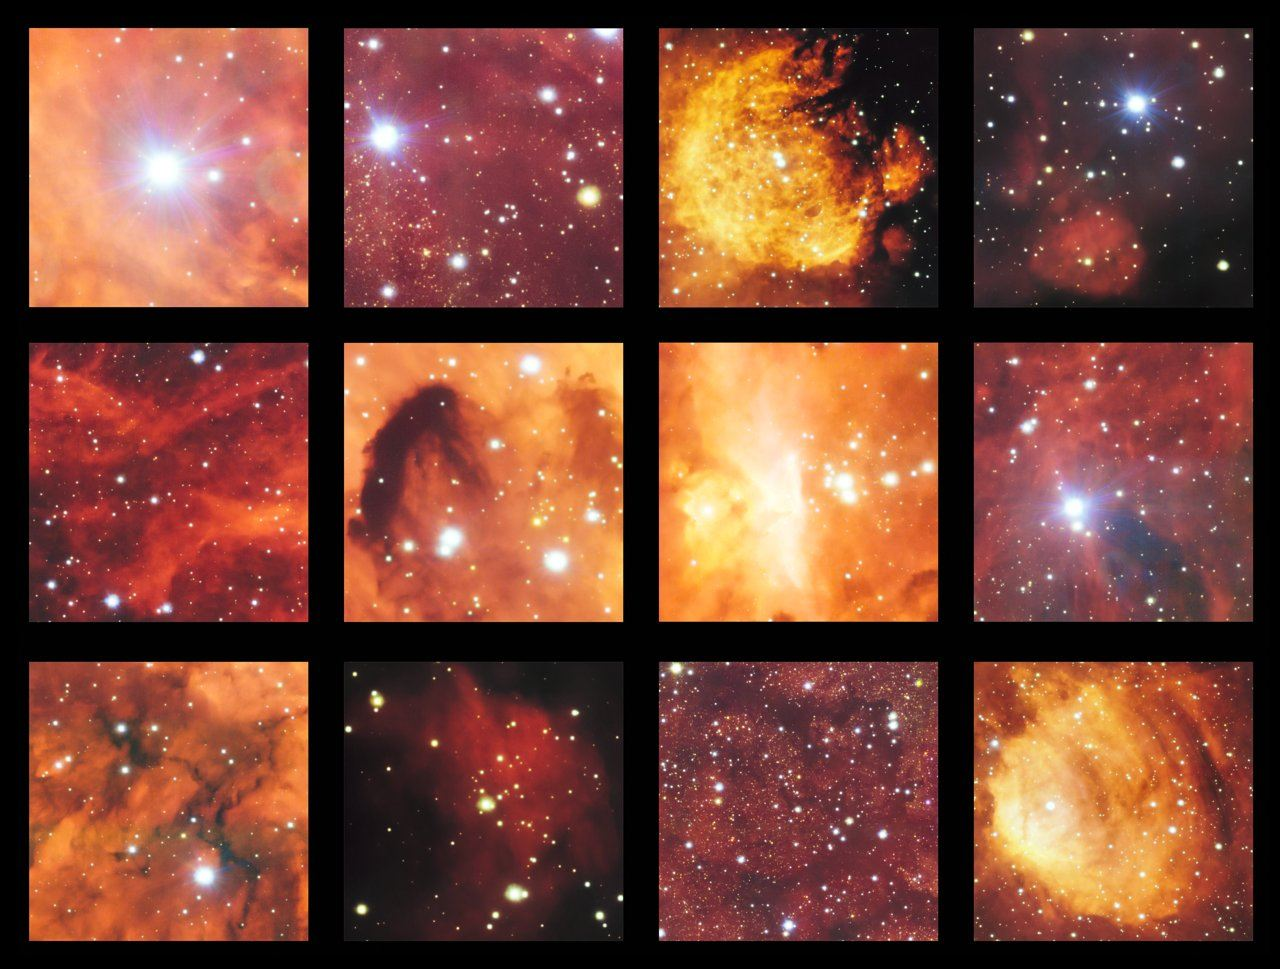 This montage shows a few of the highlights from ESO's latest survey of the Cat's Paw and Lobster nebulas. This part of the sky contains active regions of star formation where hot young stars make their surrounding clouds of hydrogen glow with a characteristic red colour. There are also clouds of dark dust in this rich celestial landscape. Image: ESO